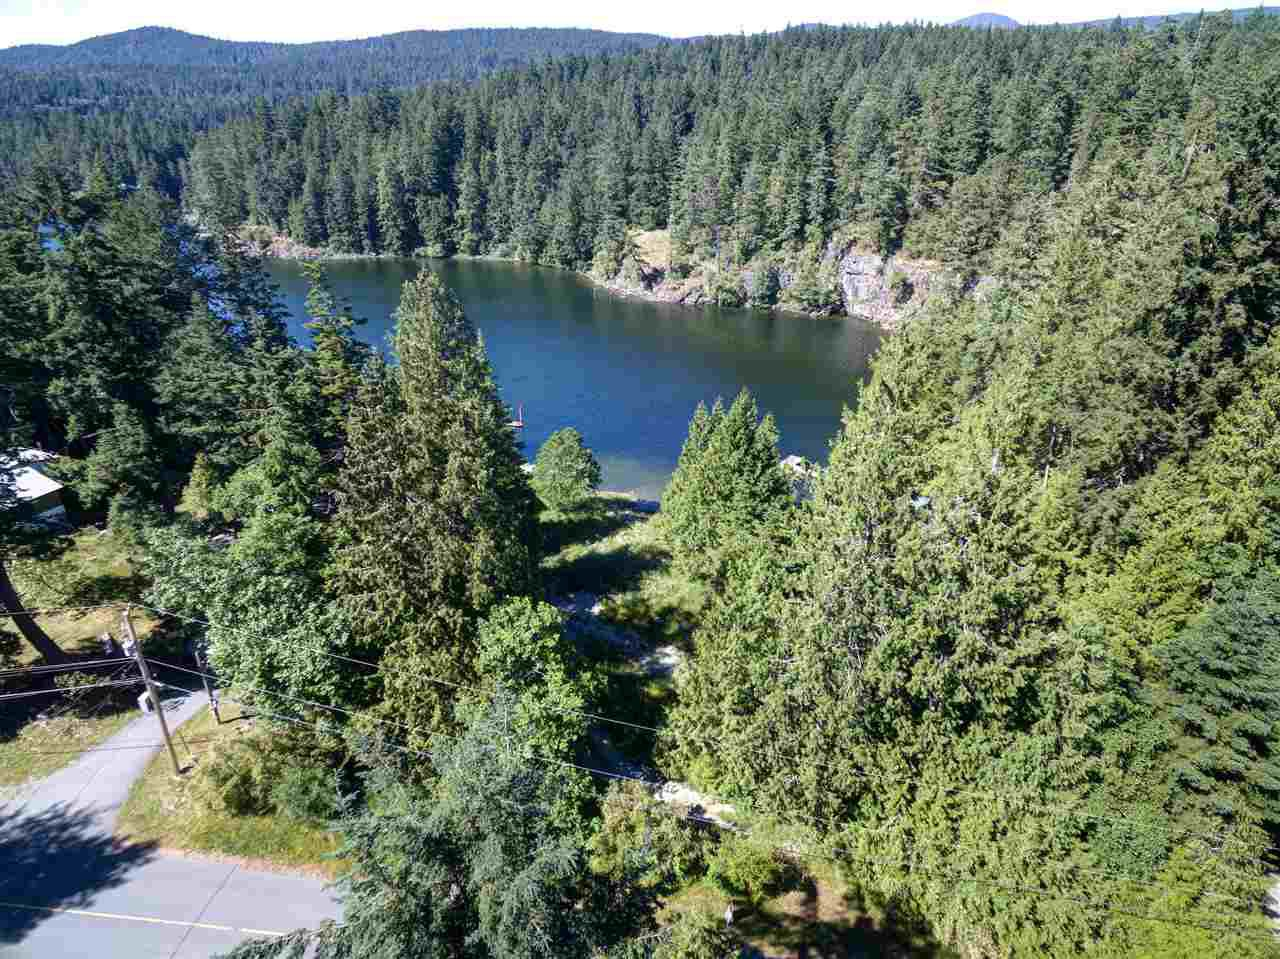 Photo 6: Photos: 9818 WESCAN Road in Halfmoon Bay: Halfmn Bay Secret Cv Redroofs Land for sale (Sunshine Coast)  : MLS®# R2375125